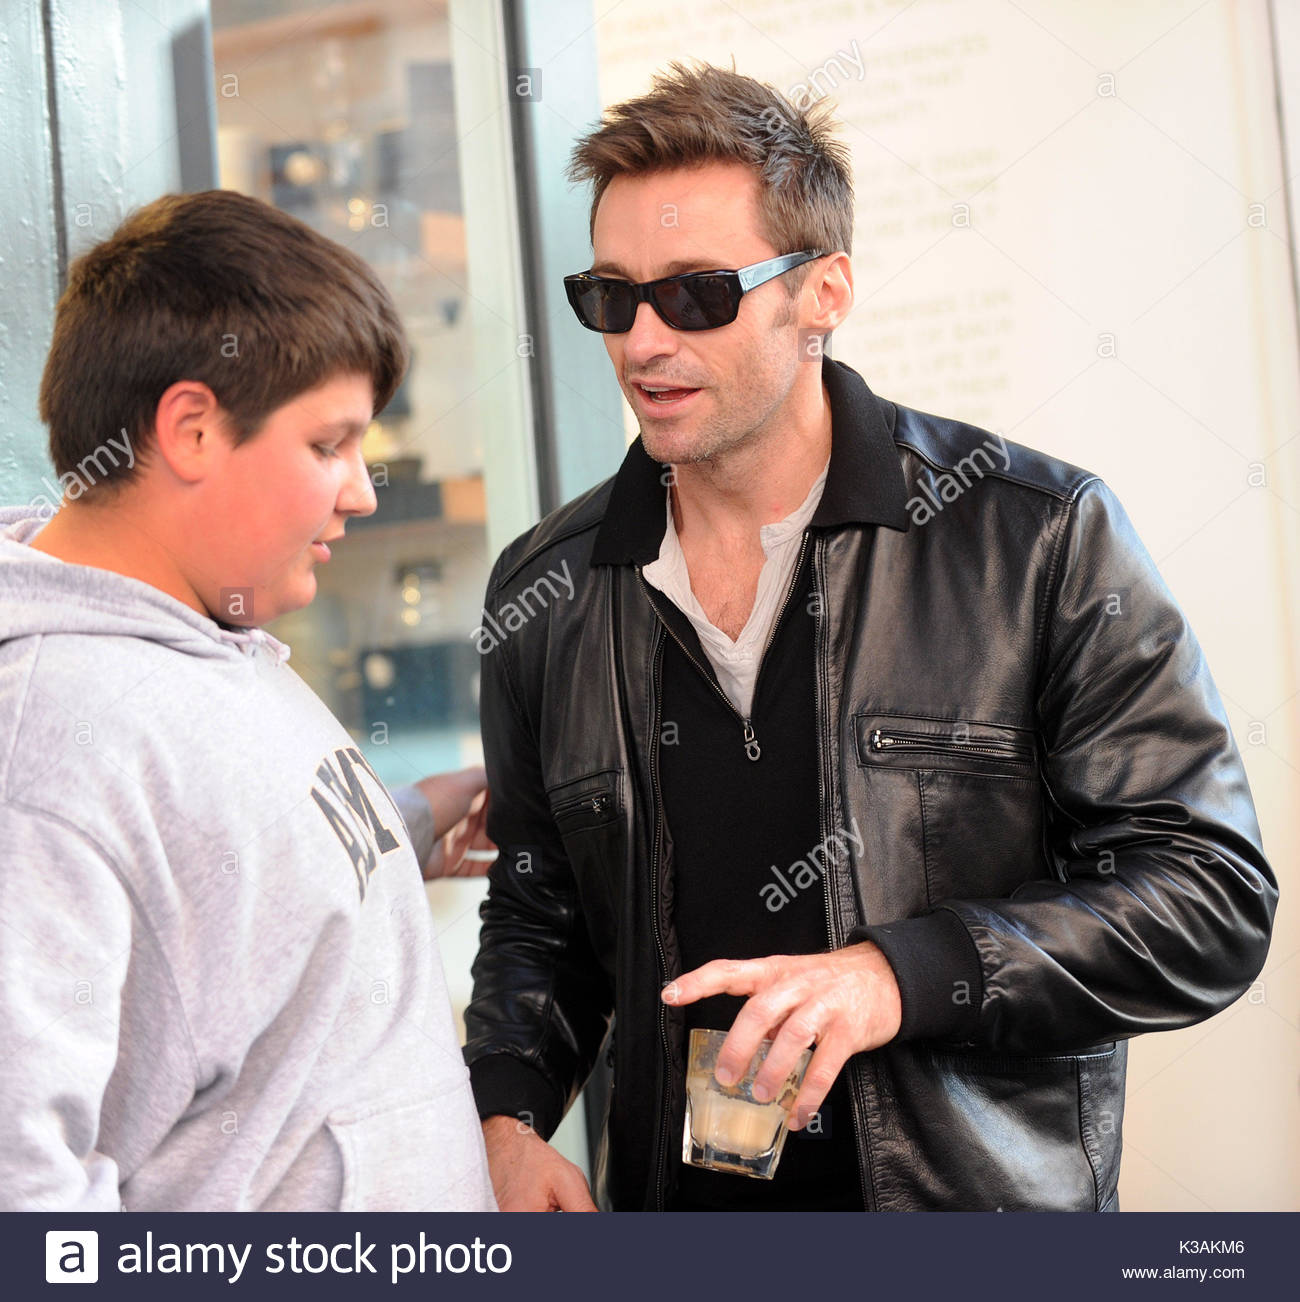 Hugh Jackman Actor Has Opened A New Shop Called Laughing Man Coffee Tea In Tribeca York City Came Outside With And Posed